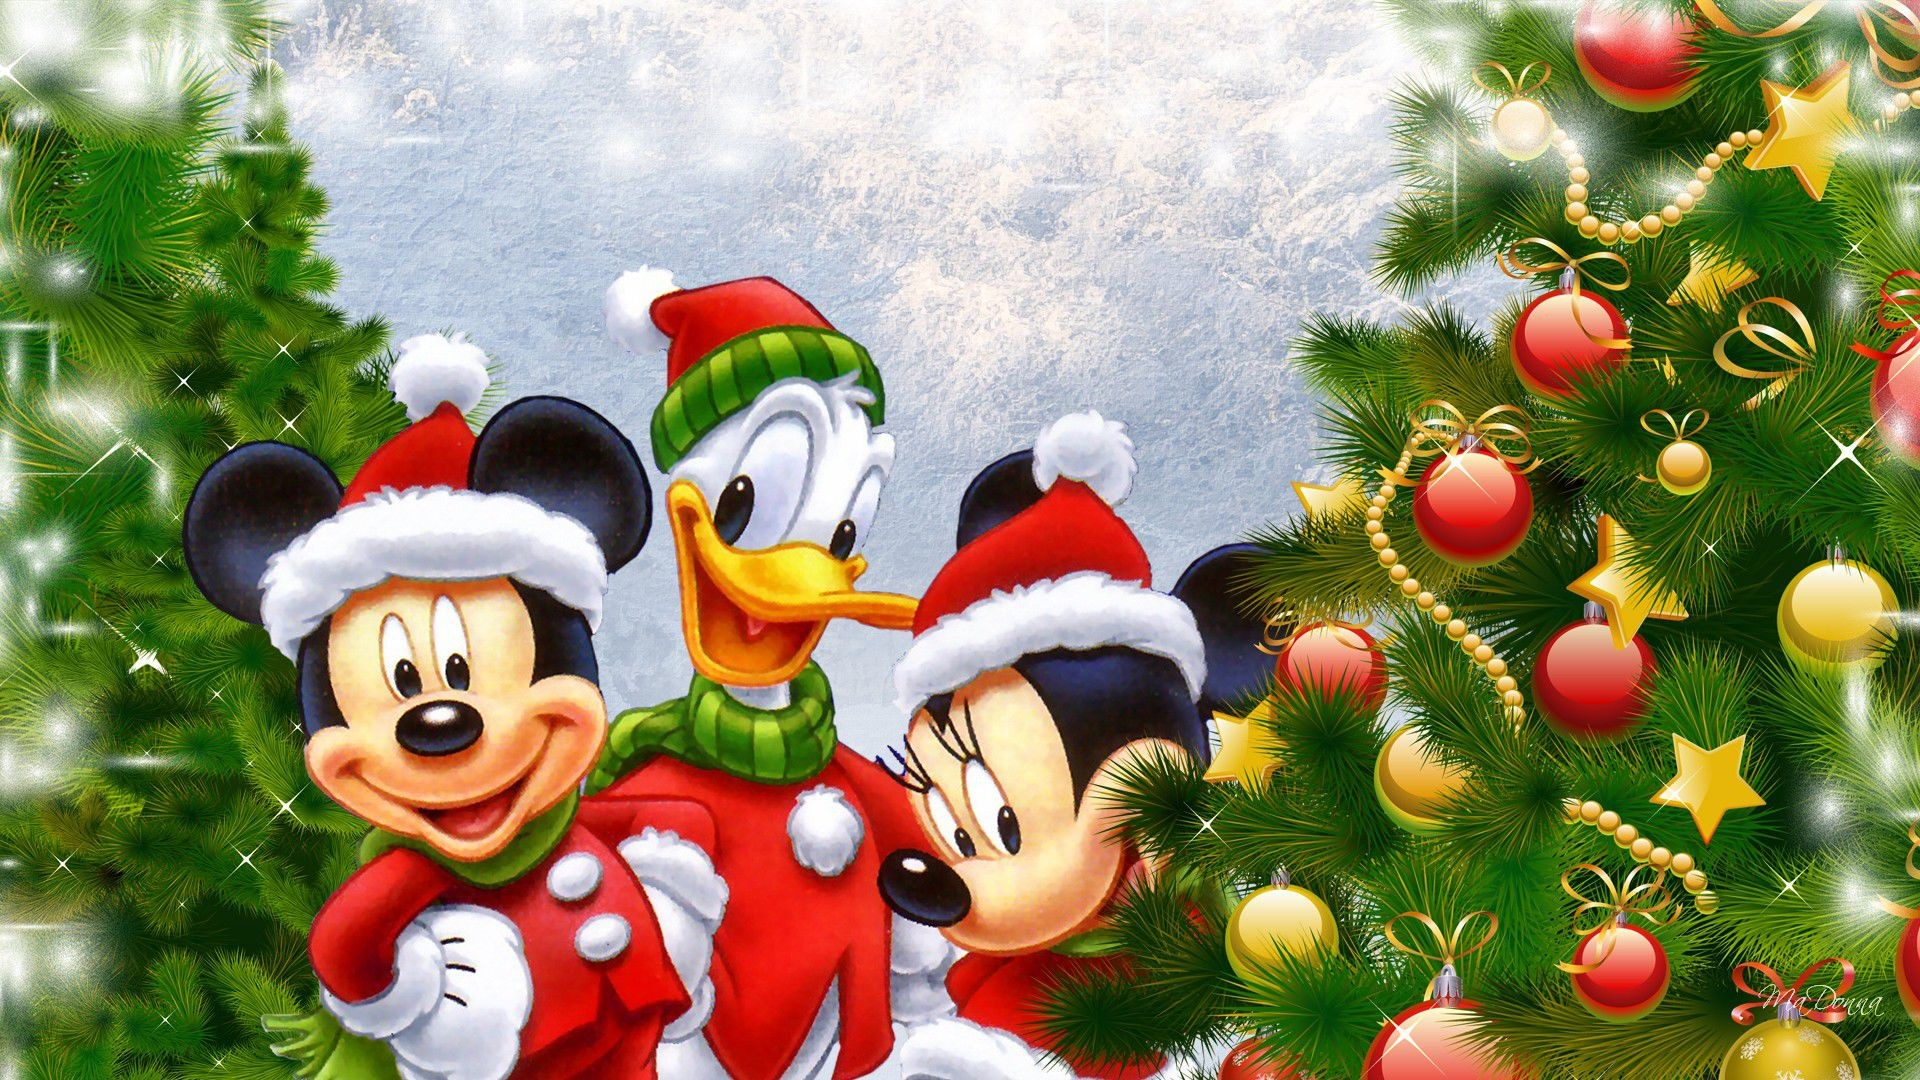 Disney Christmas Wallpaper and Screensavers (57+ images)